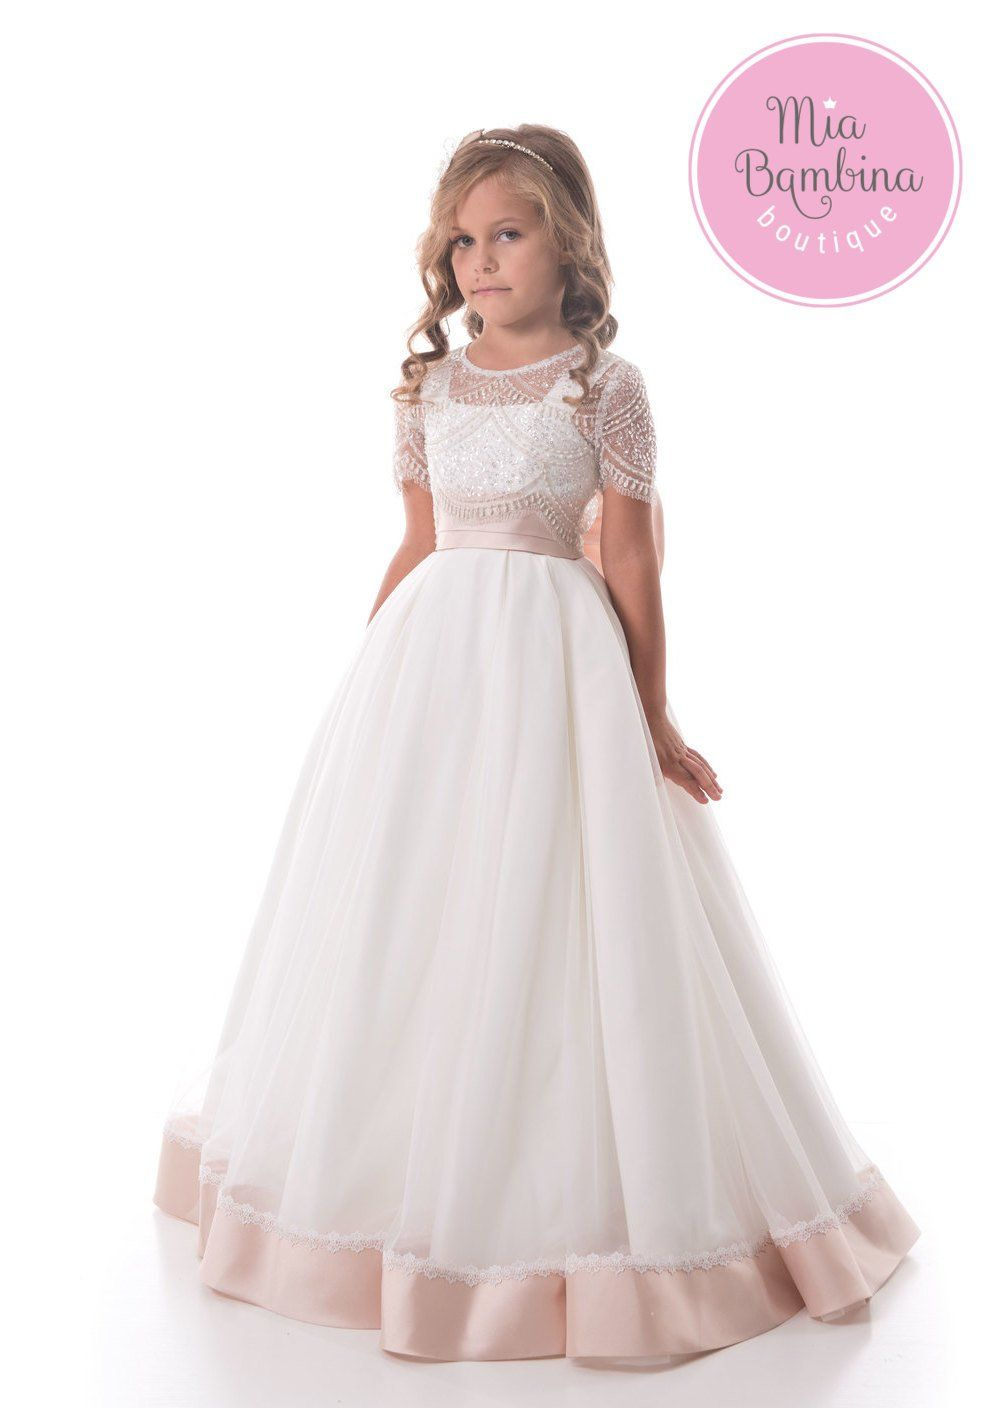 Valencia Mini Princess Pinterest Girls Dresses Flower Girl Baju Anak Dress Kostum Aurora Pink Motif A Beautiful For From 3 Year To 14 Years Old The Tulle Lace Gown Features Overlay Bodice Wide Straps And Floor Length